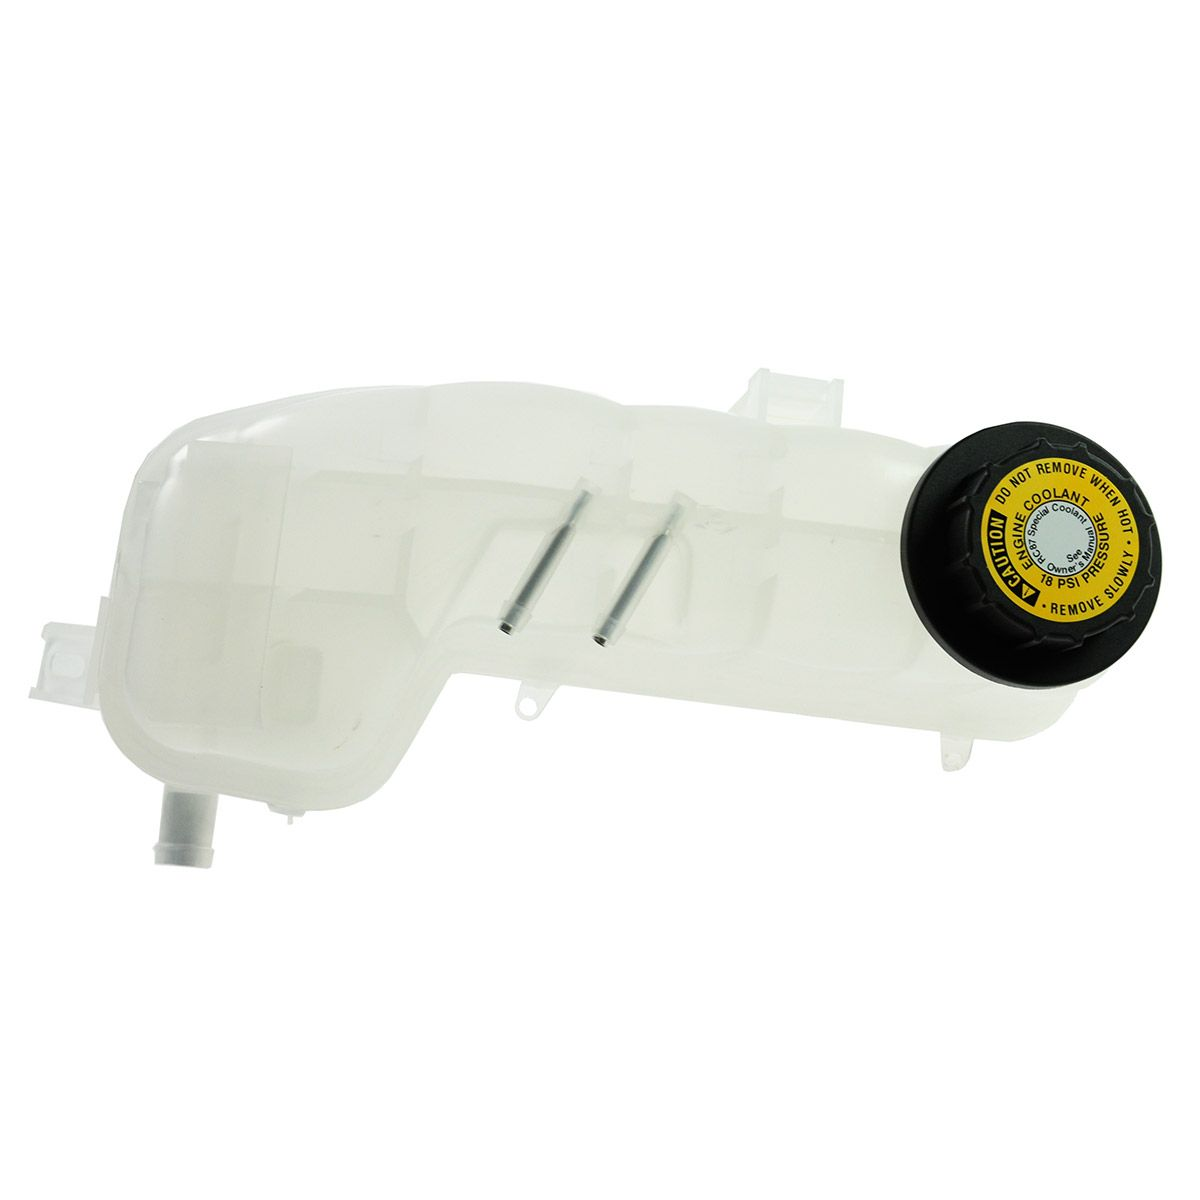 Coolant Reservoir Expansion Recovery Tank with Cap for Chevrolet Malibu Cavalier Oldsmobile Cutlass Pontiac Sunfire